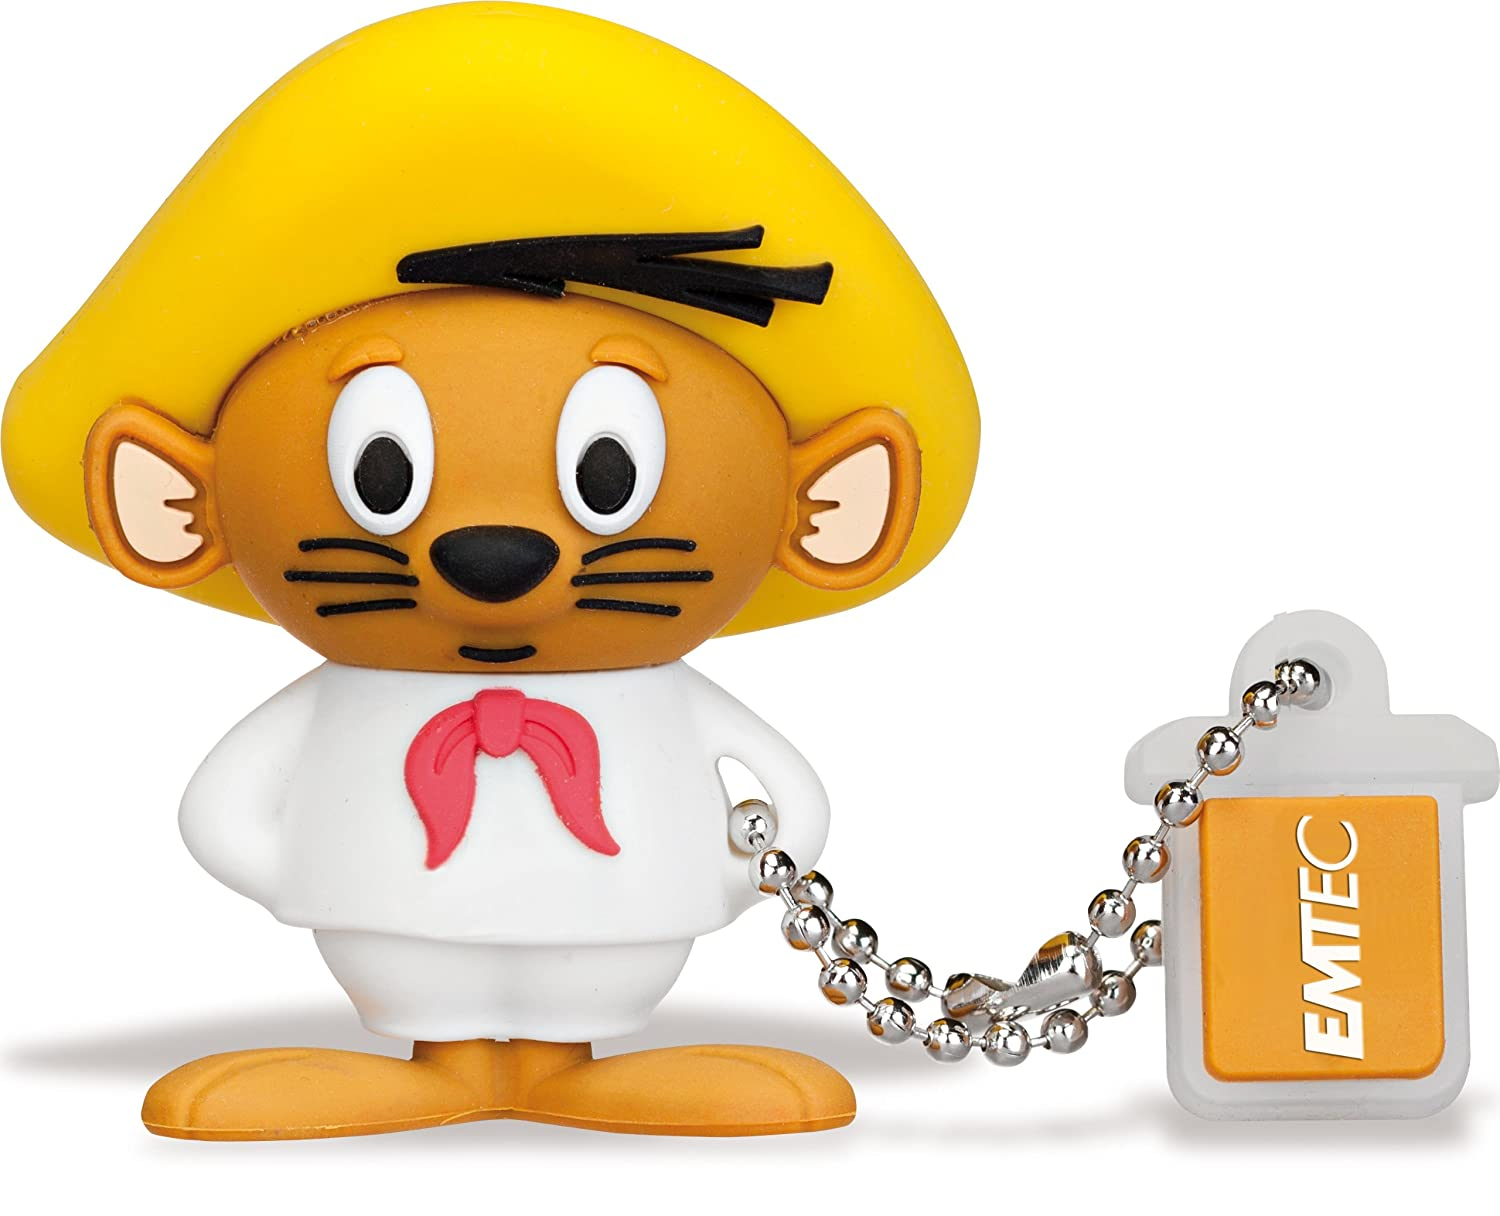 Looney Tunes Episode 1 L102 Speedy Gonzales - USB-Flash-Laufwerk - 8 GB